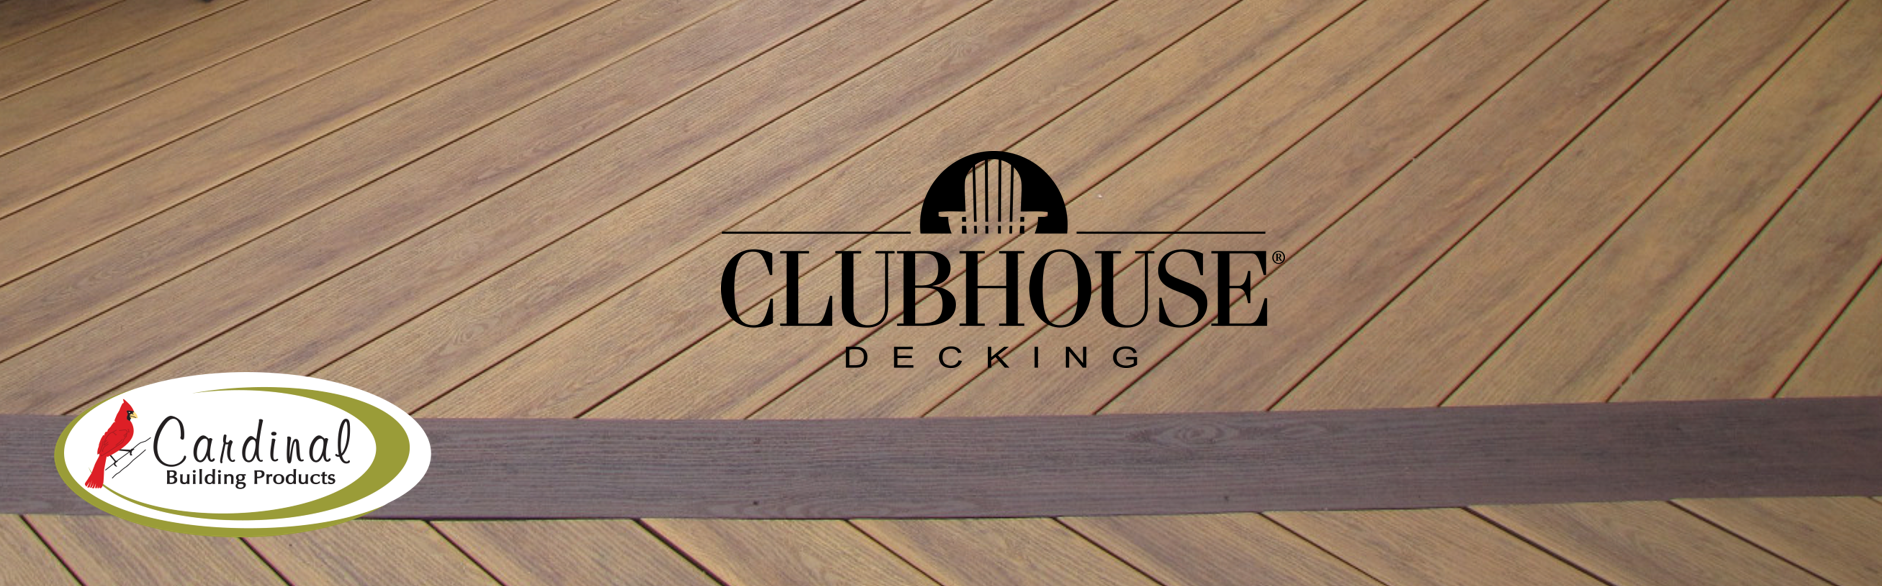 Clubhouse Decking - Cardinal Building Products